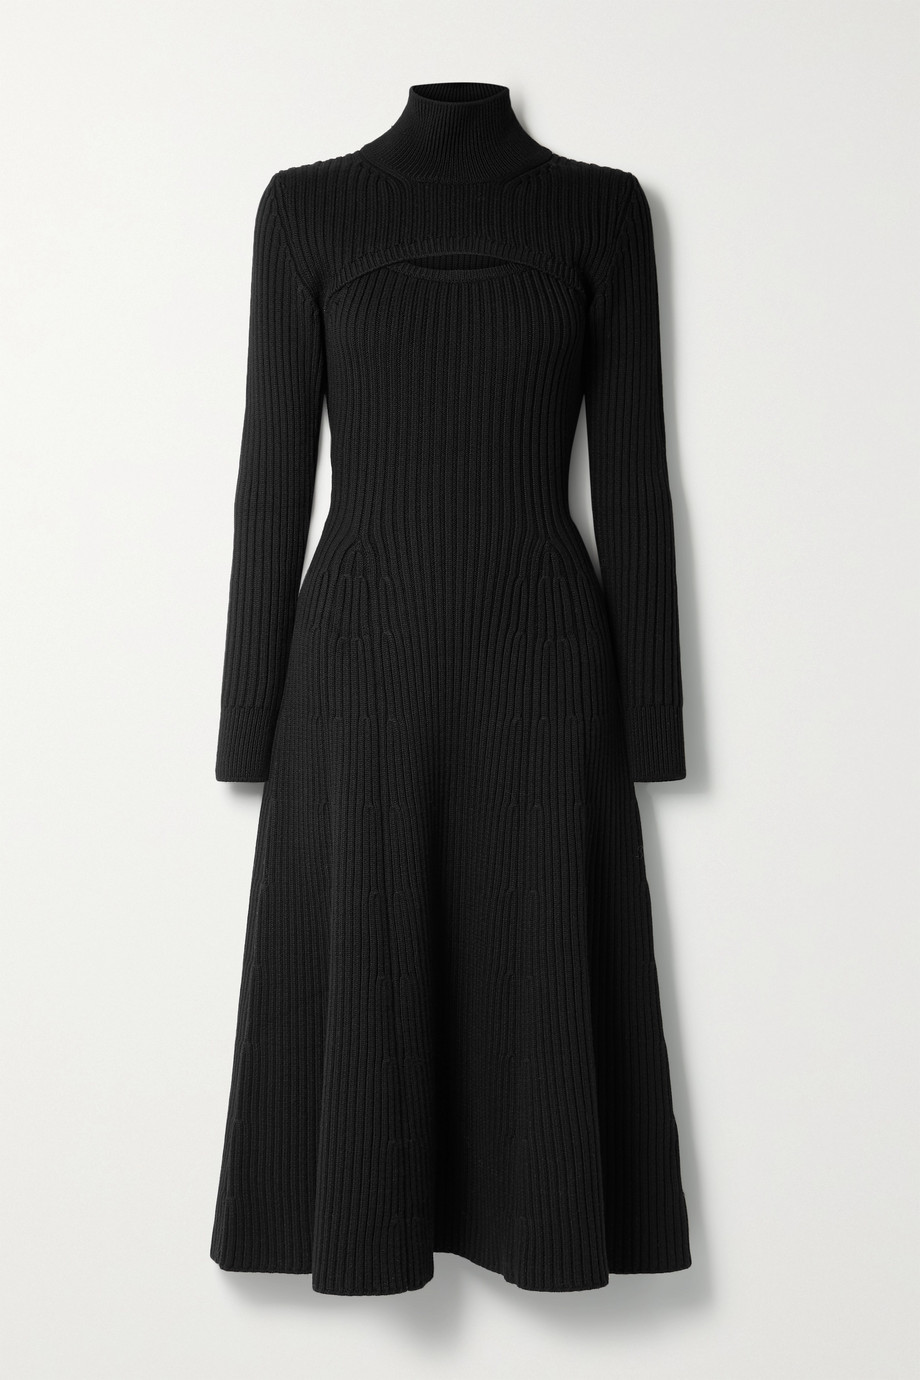 Rosie Assoulin Thousand in One Ways convertible ribbed wool turtleneck midi dress